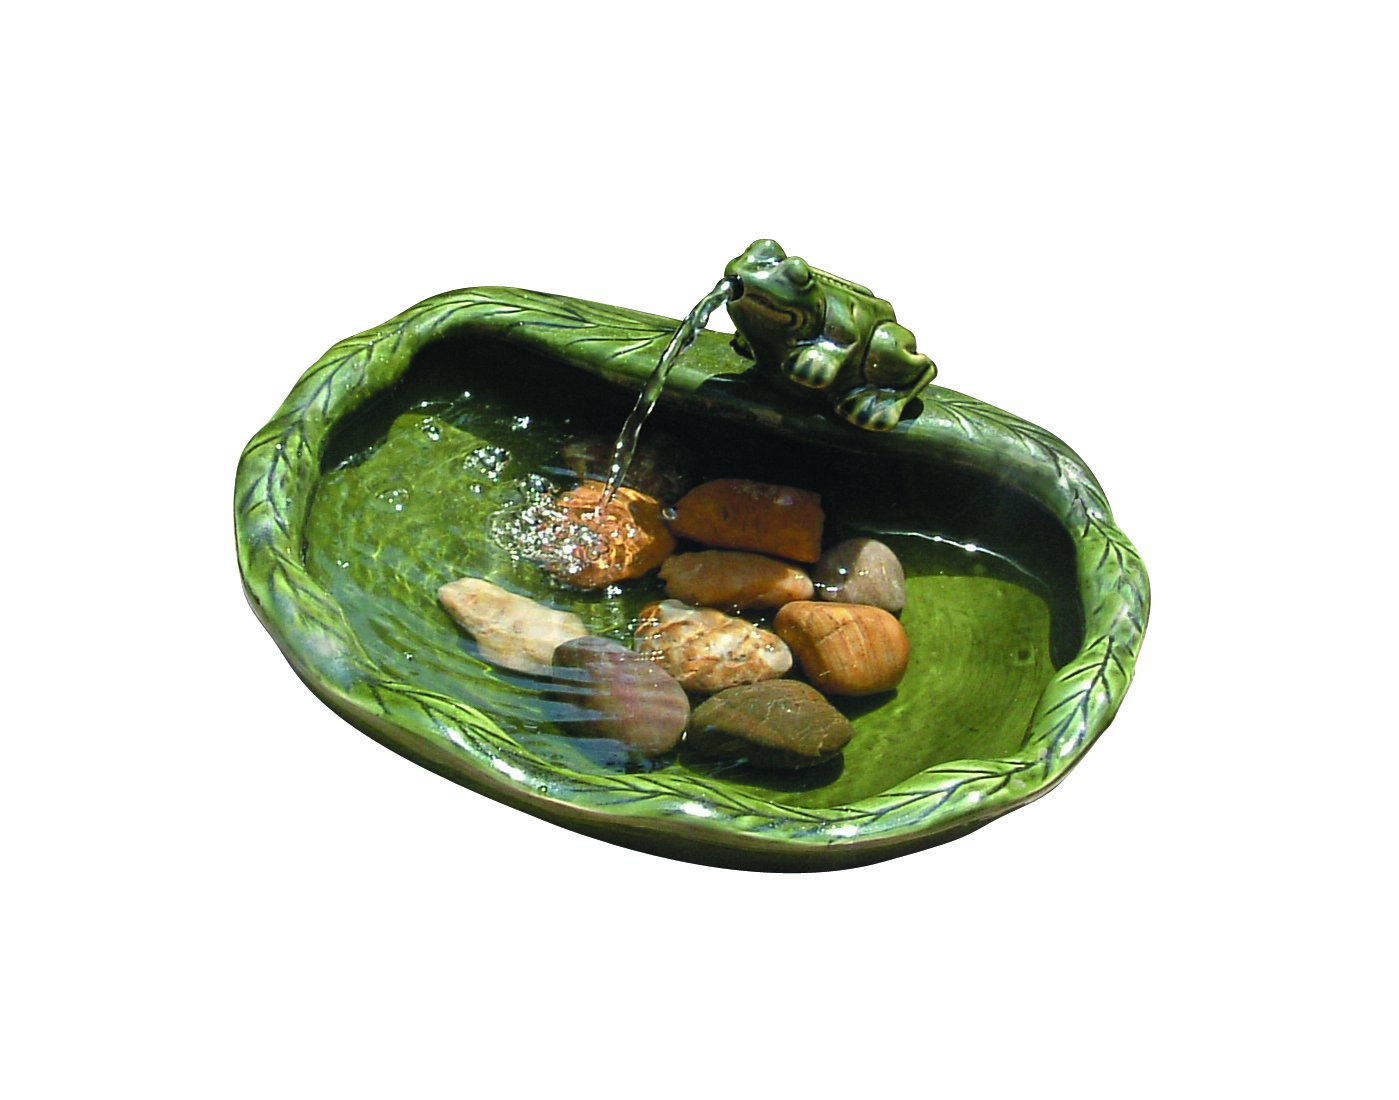 Frog Spitter & Frog Fountains For Lawn And Garden